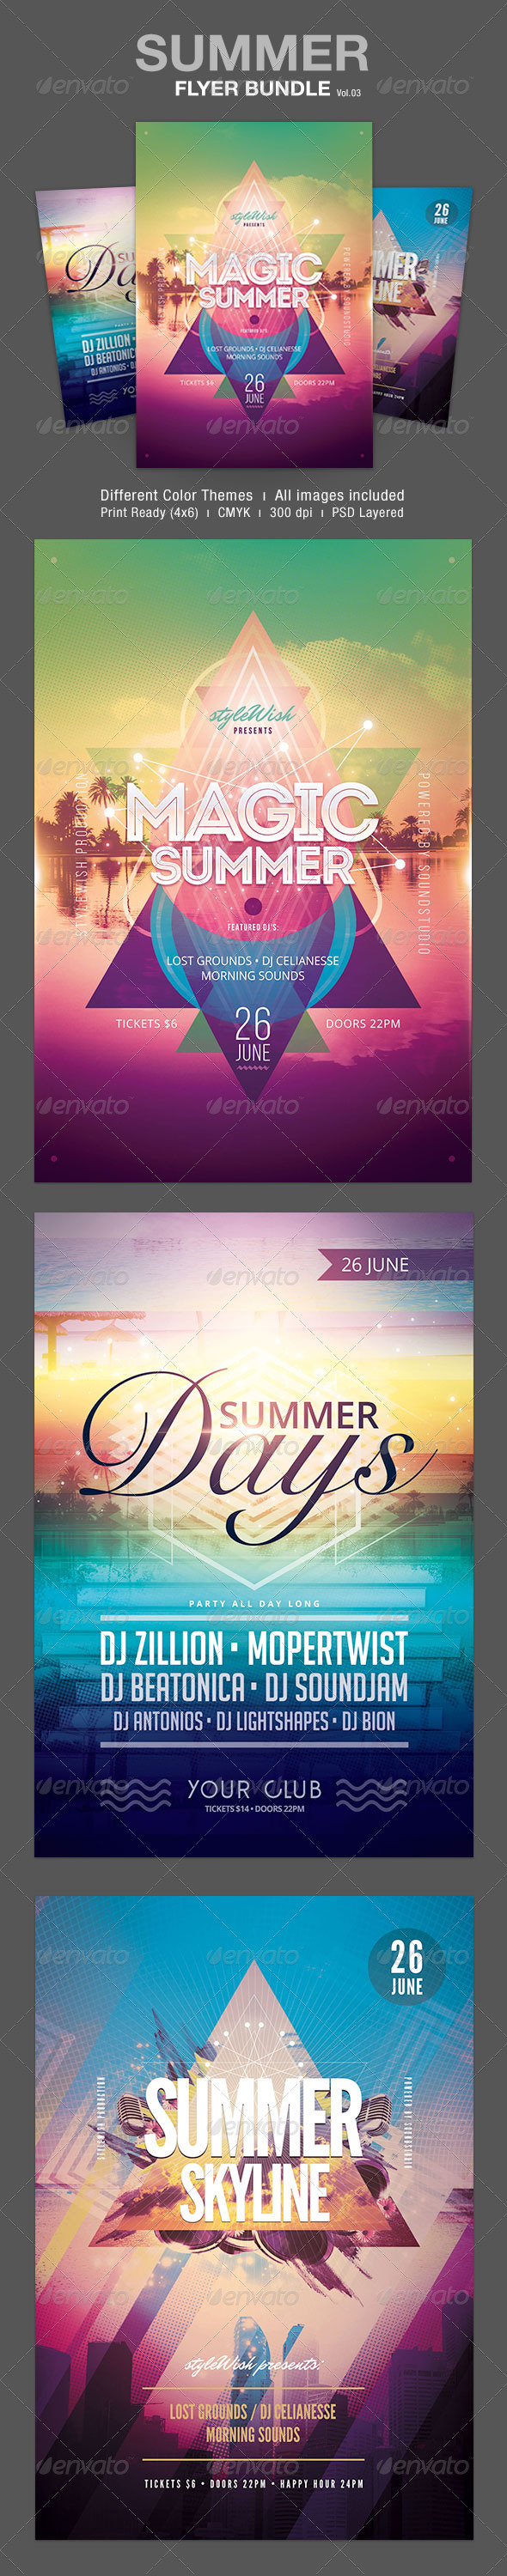 GraphicRiver Summer Flyer Bundle Vol.03 7406503